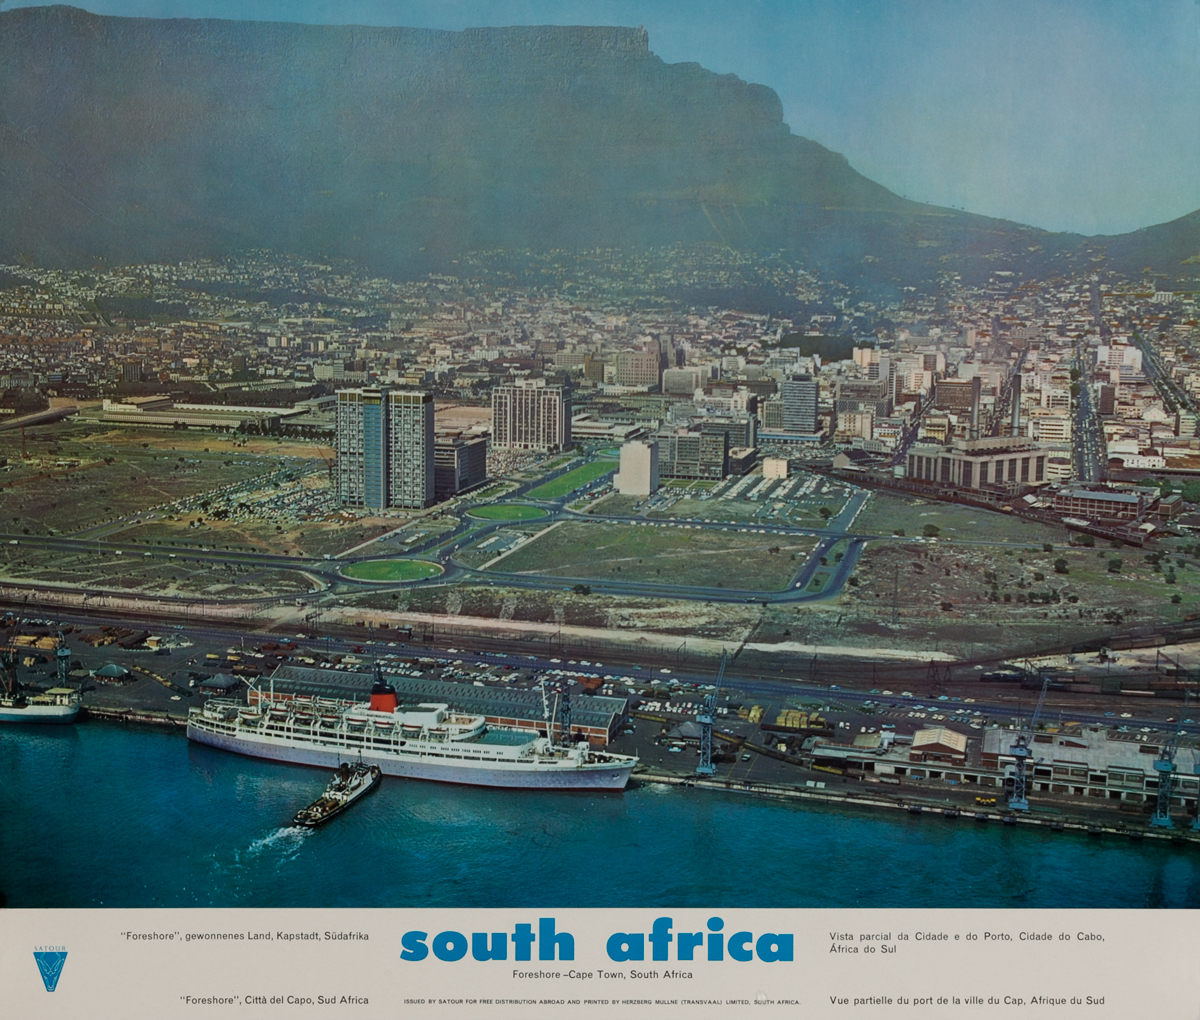 South Africa, Foreshore - Cape Town